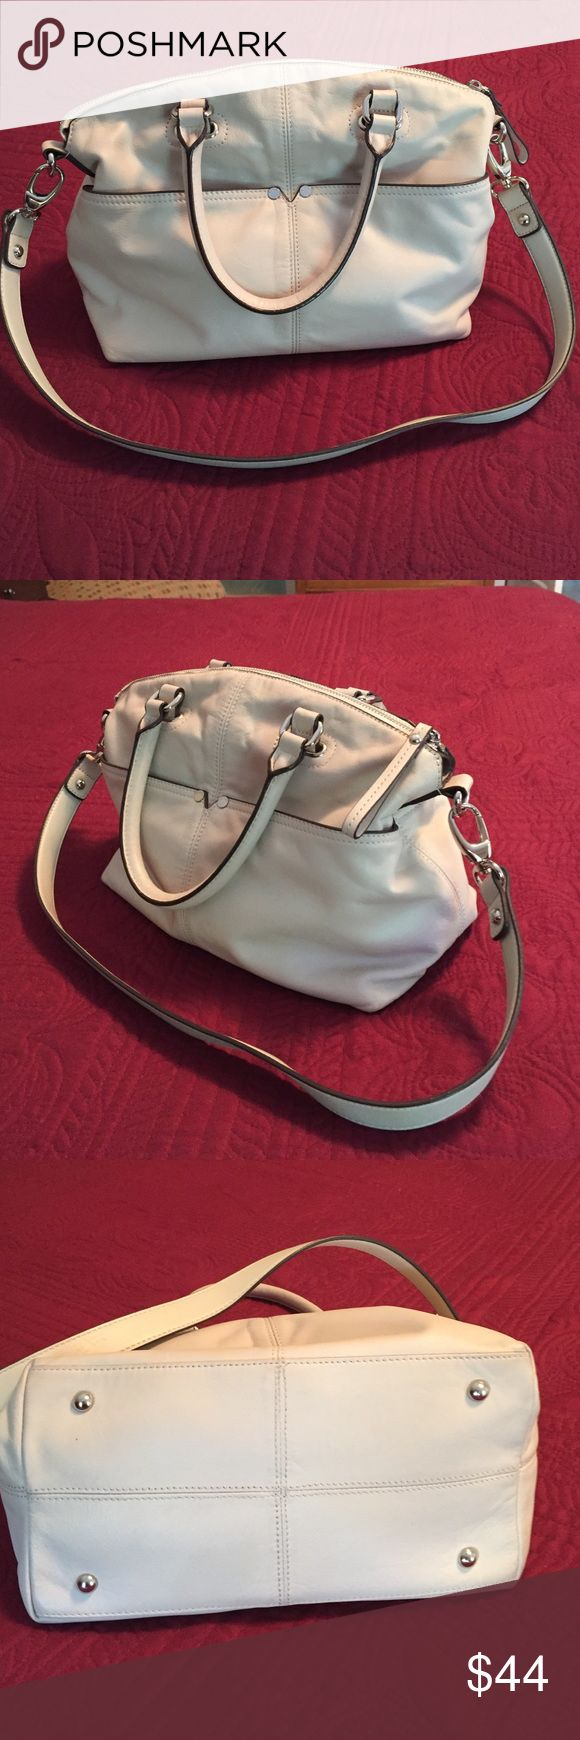 "Cream leather Tignanello handbag Tignanello ""Polished Pockets"" leather convertible satchel. Perfect condition, no spots or blemishes inside or out. Four outside slip pockets, one zip pocket and 2 more slip pockets inside. 14"" x 10"" x 6"" Tignanello Bags Satchels"